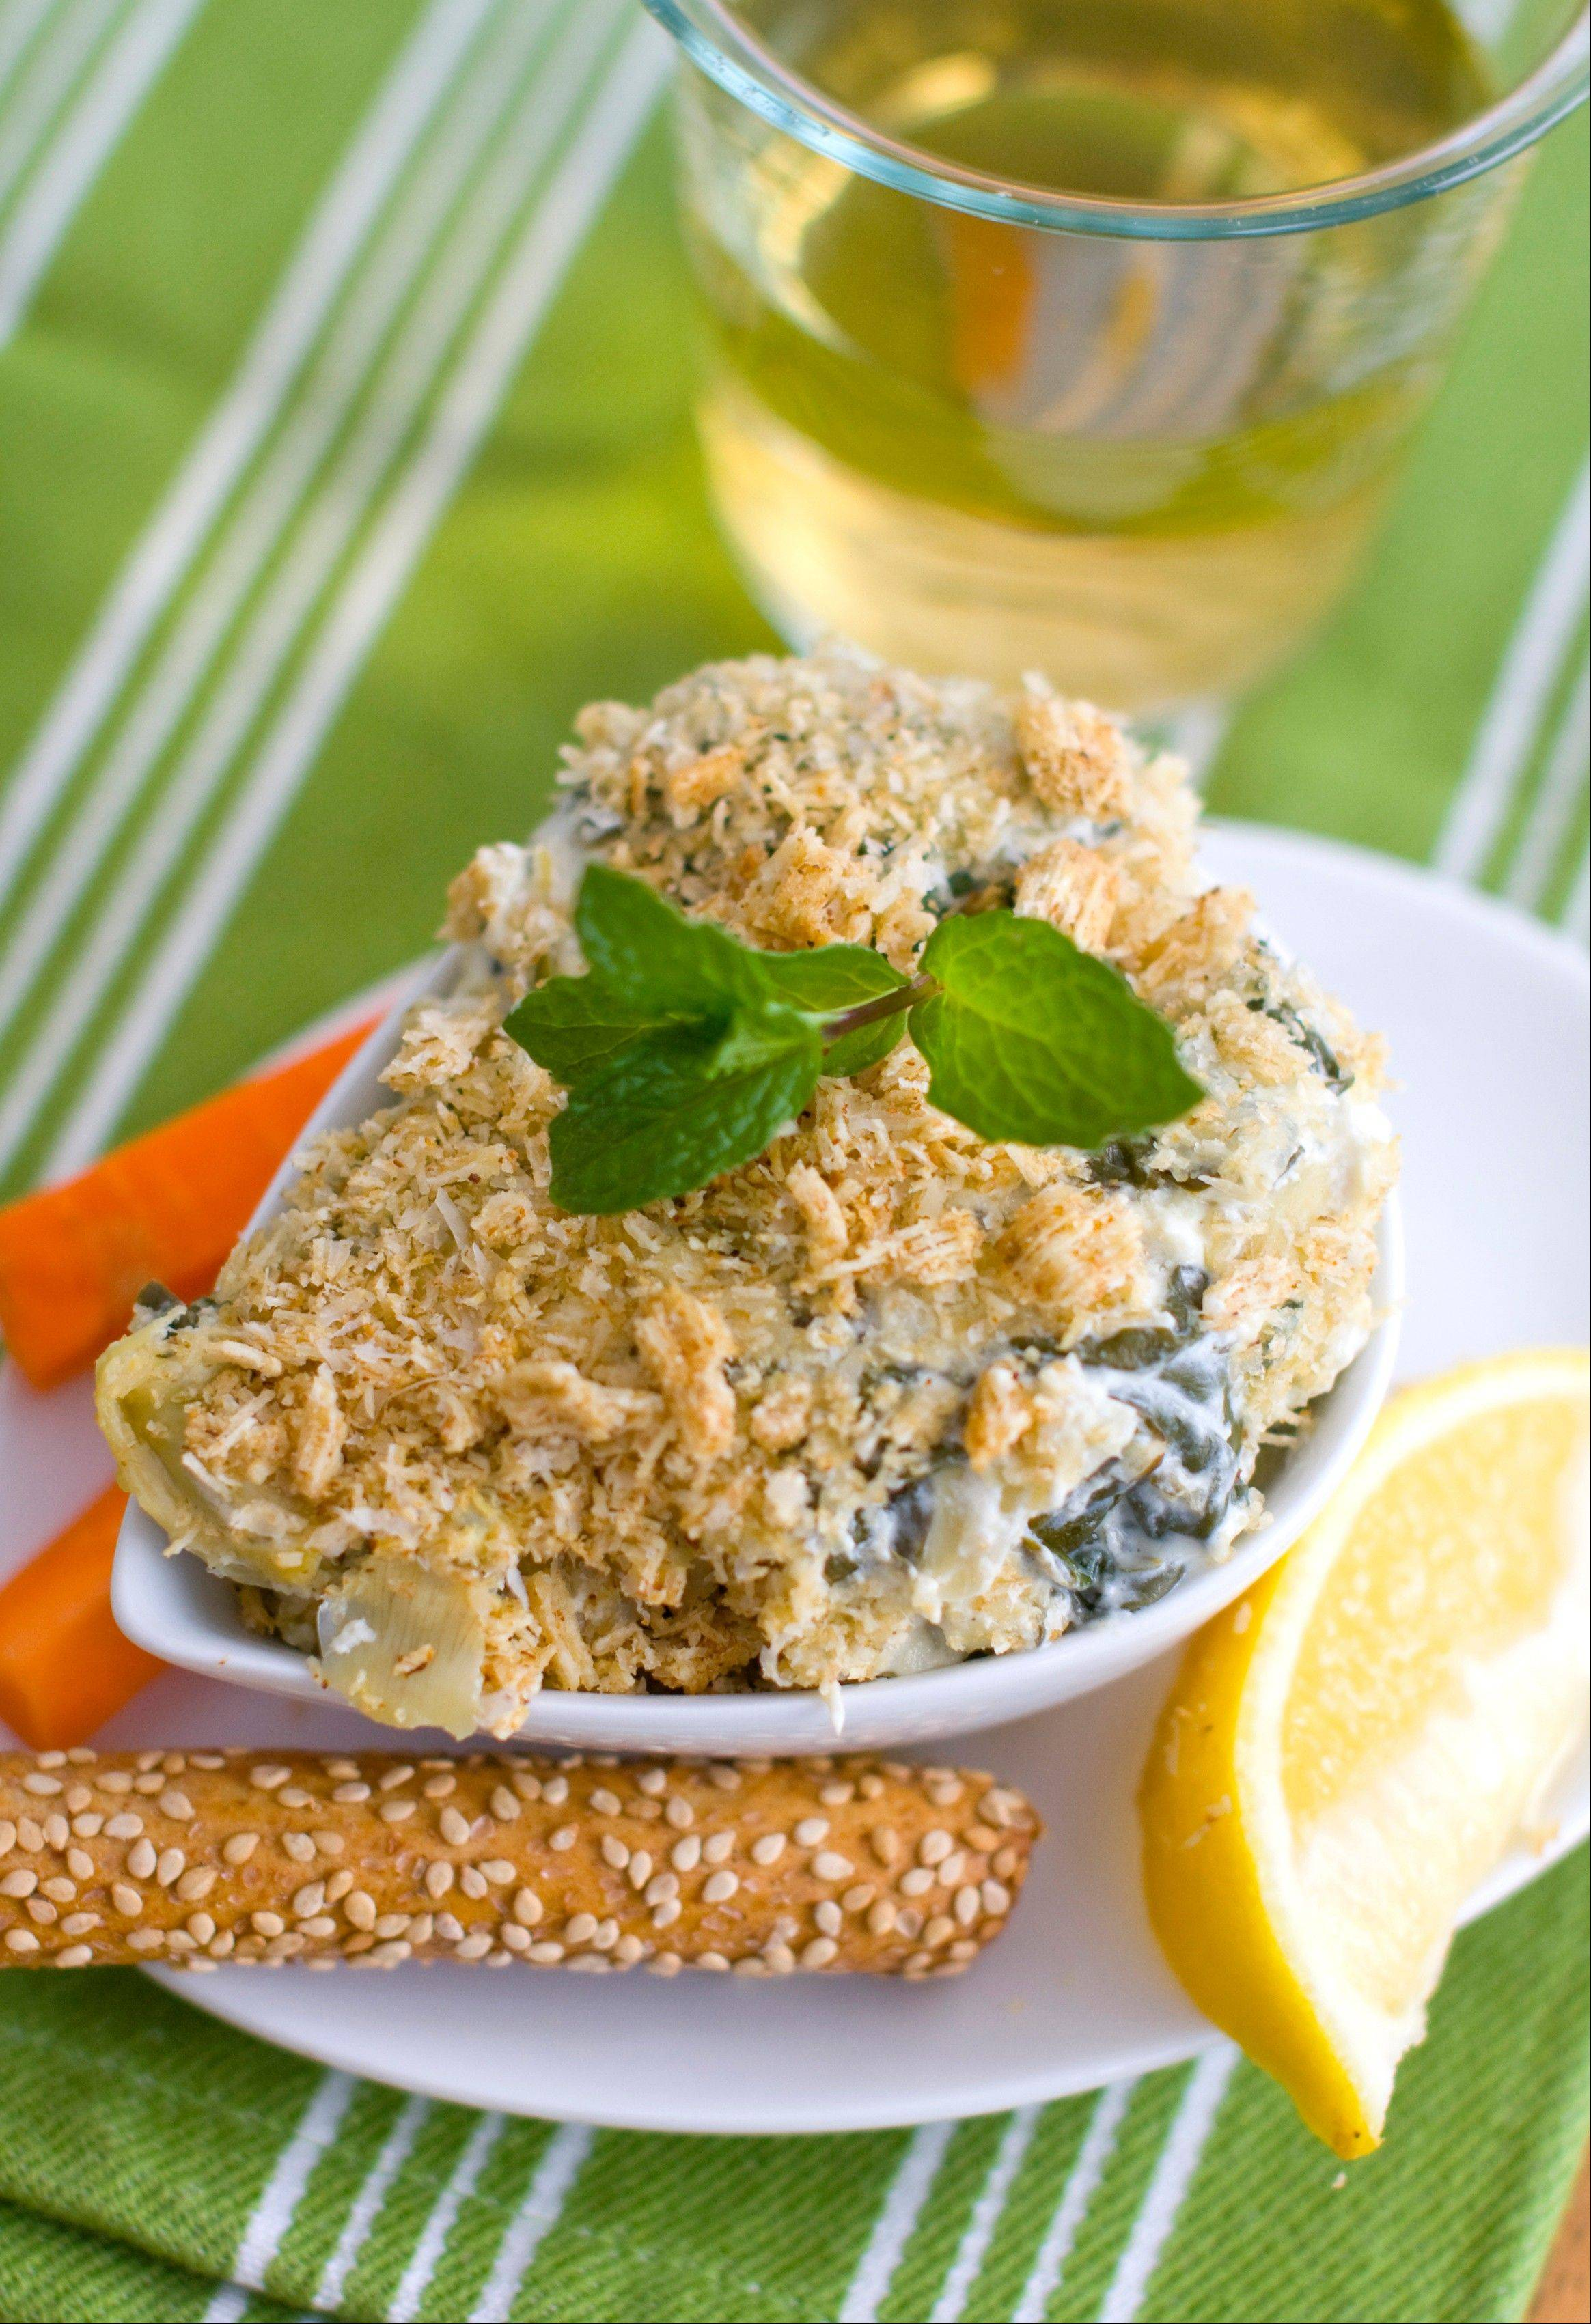 Greek yogurt and low-fat cream cheese help slim down spinach and artichoke dip.